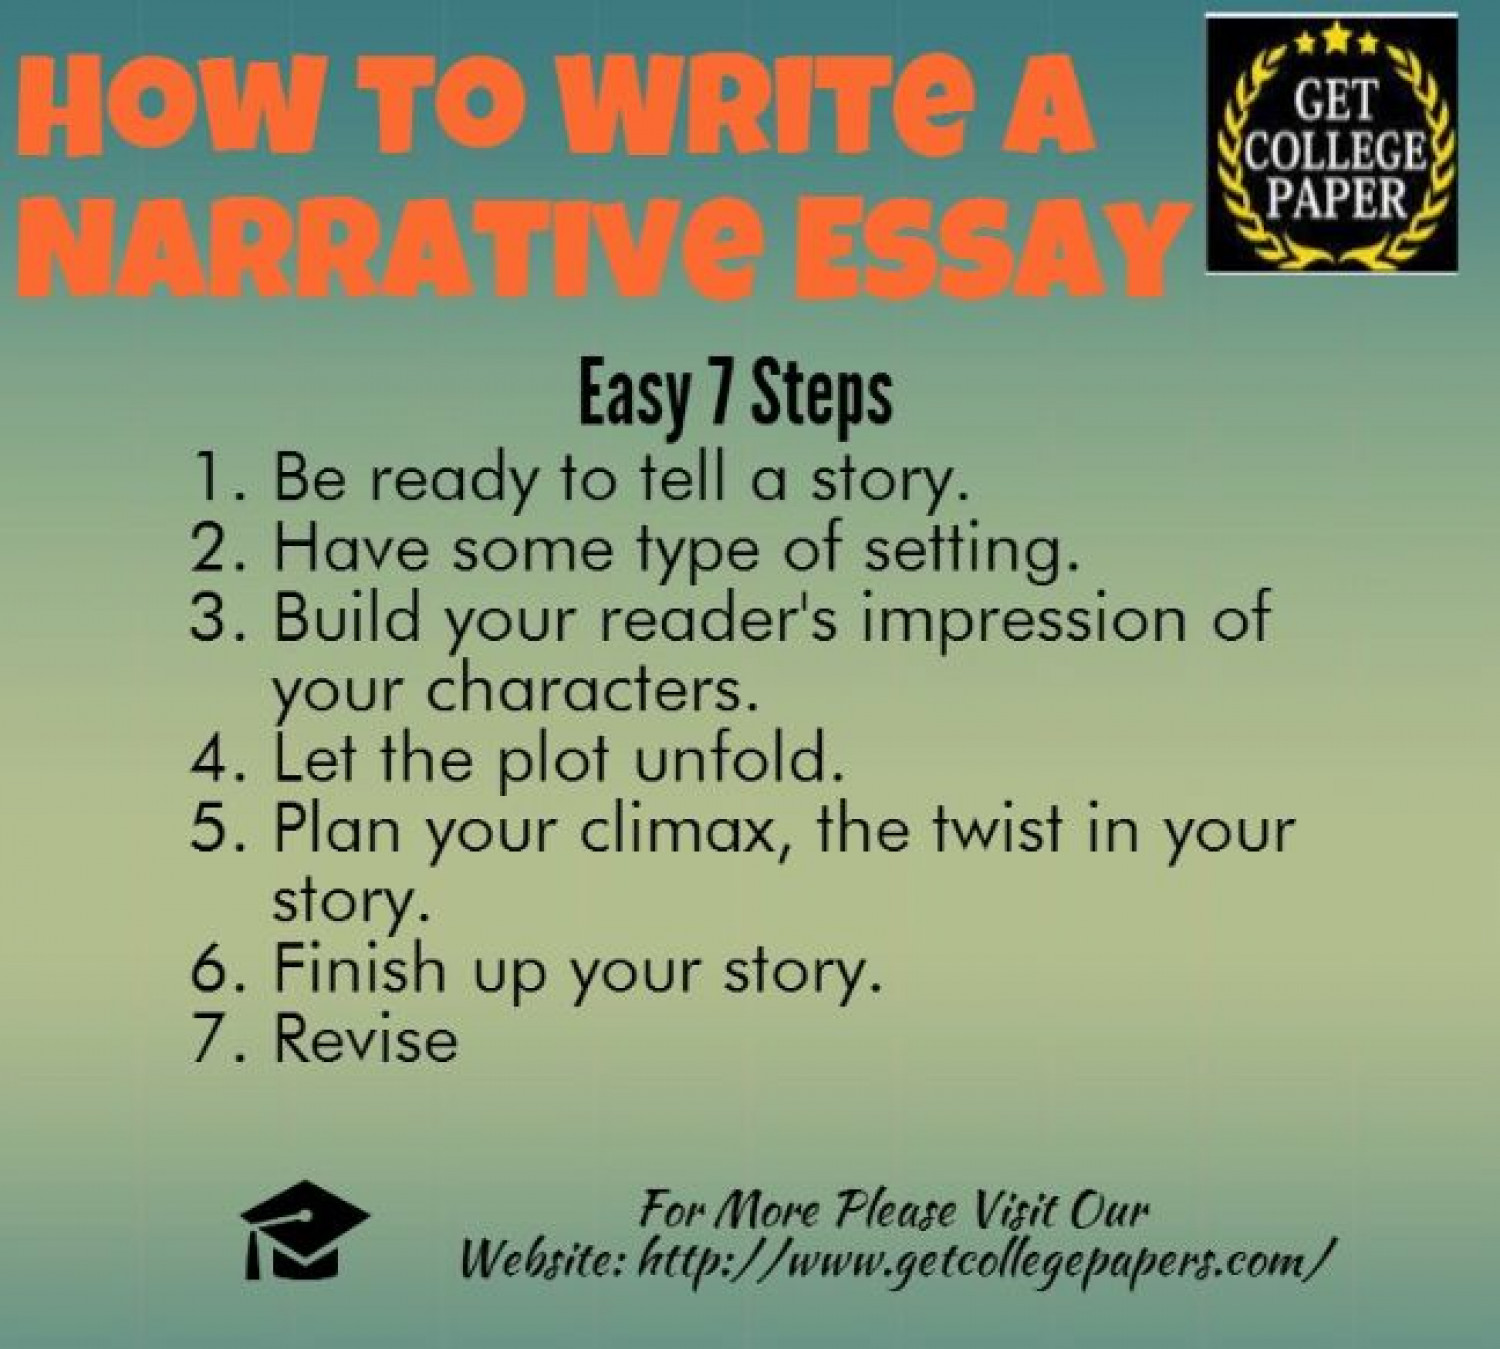 What to write a narrative essay about